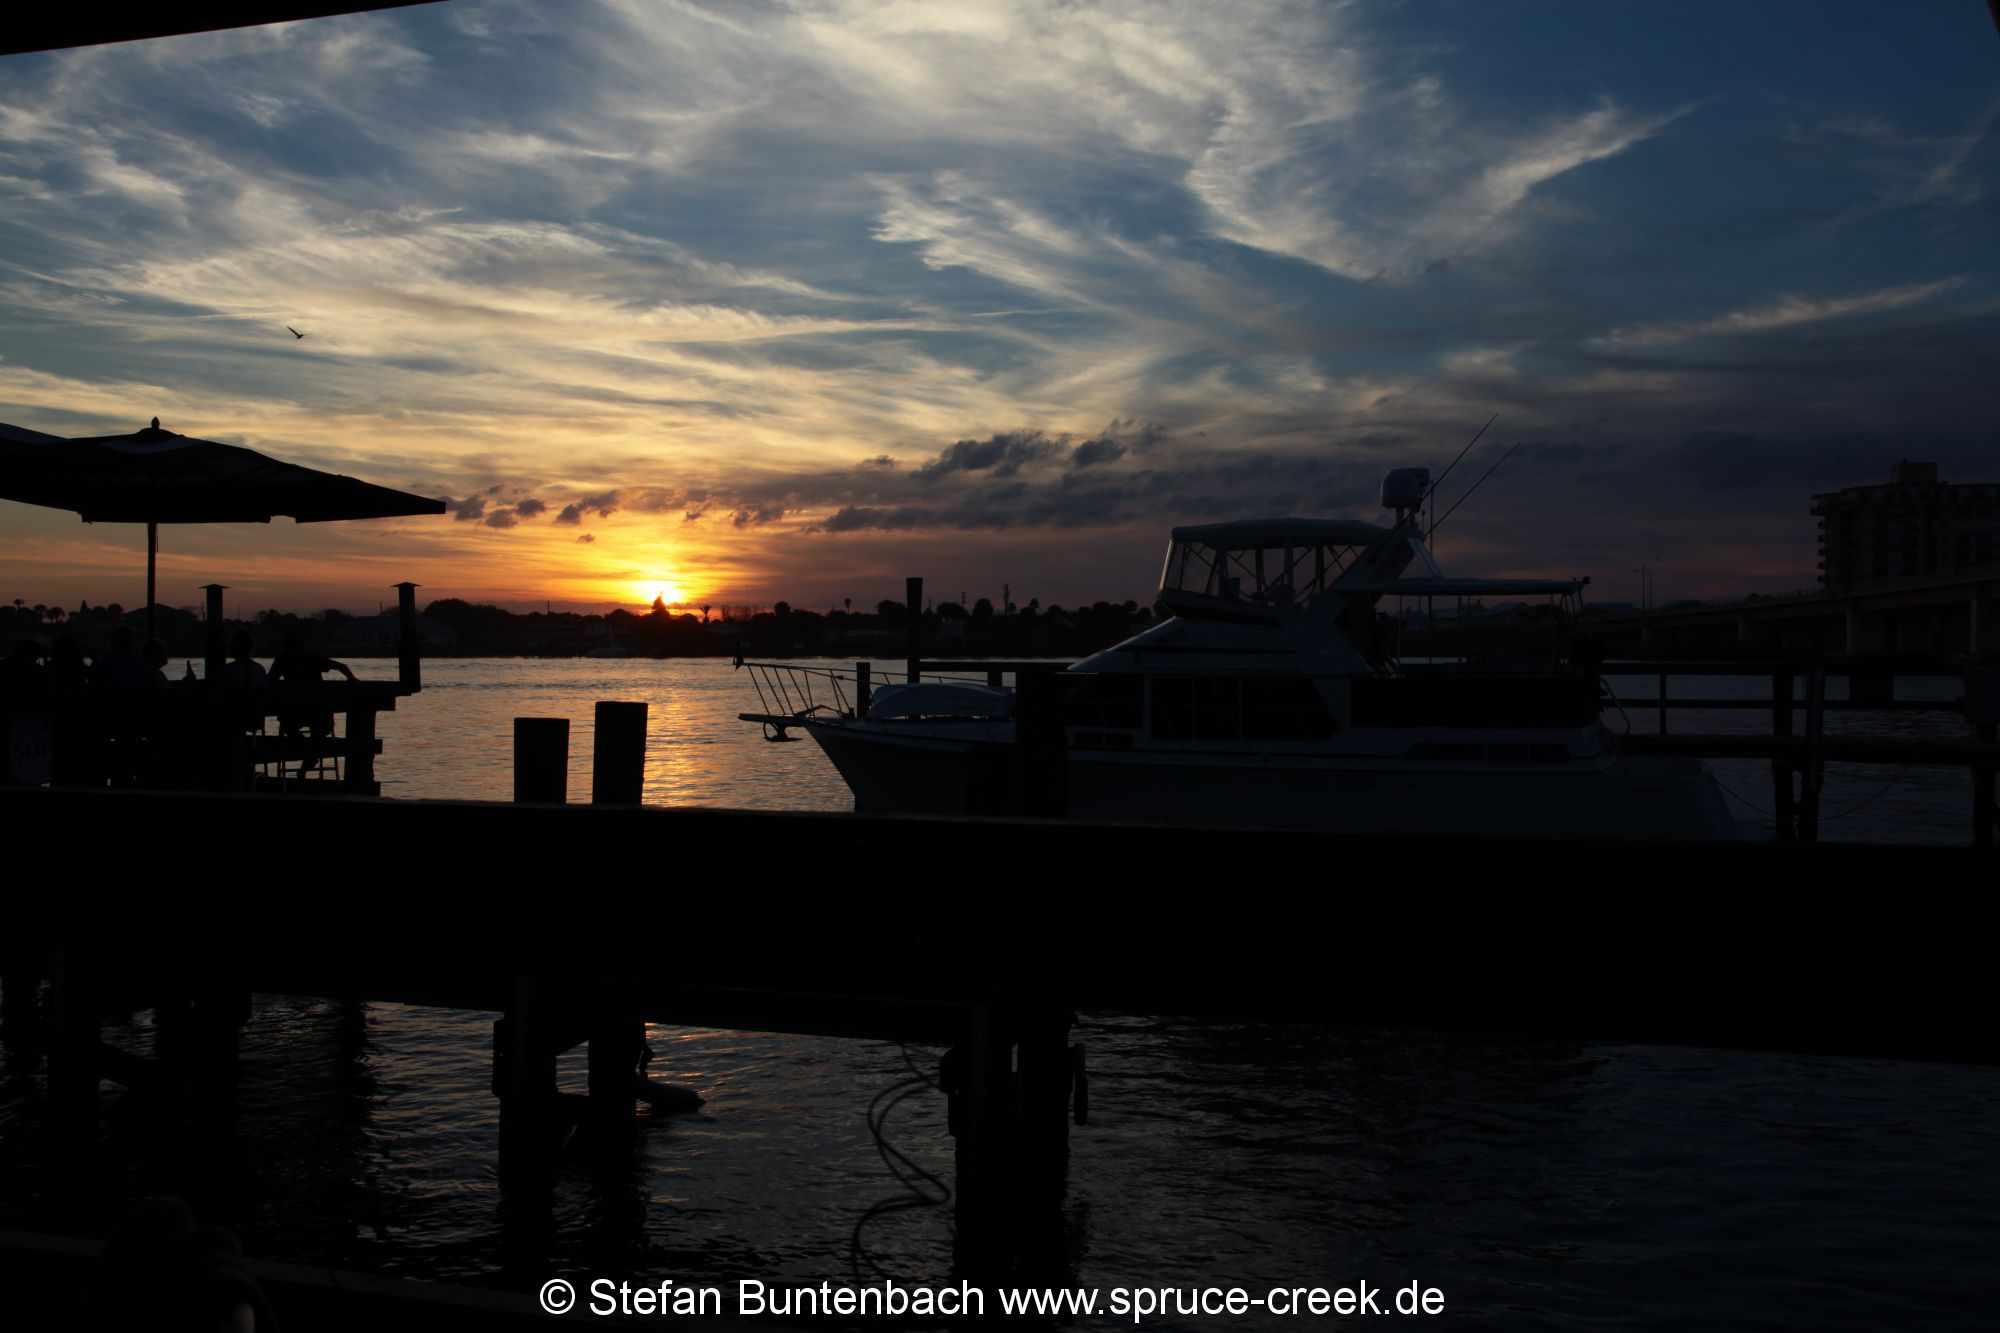 Sonnenuntergang beim Grille at Riverview in New Smyrna Beach